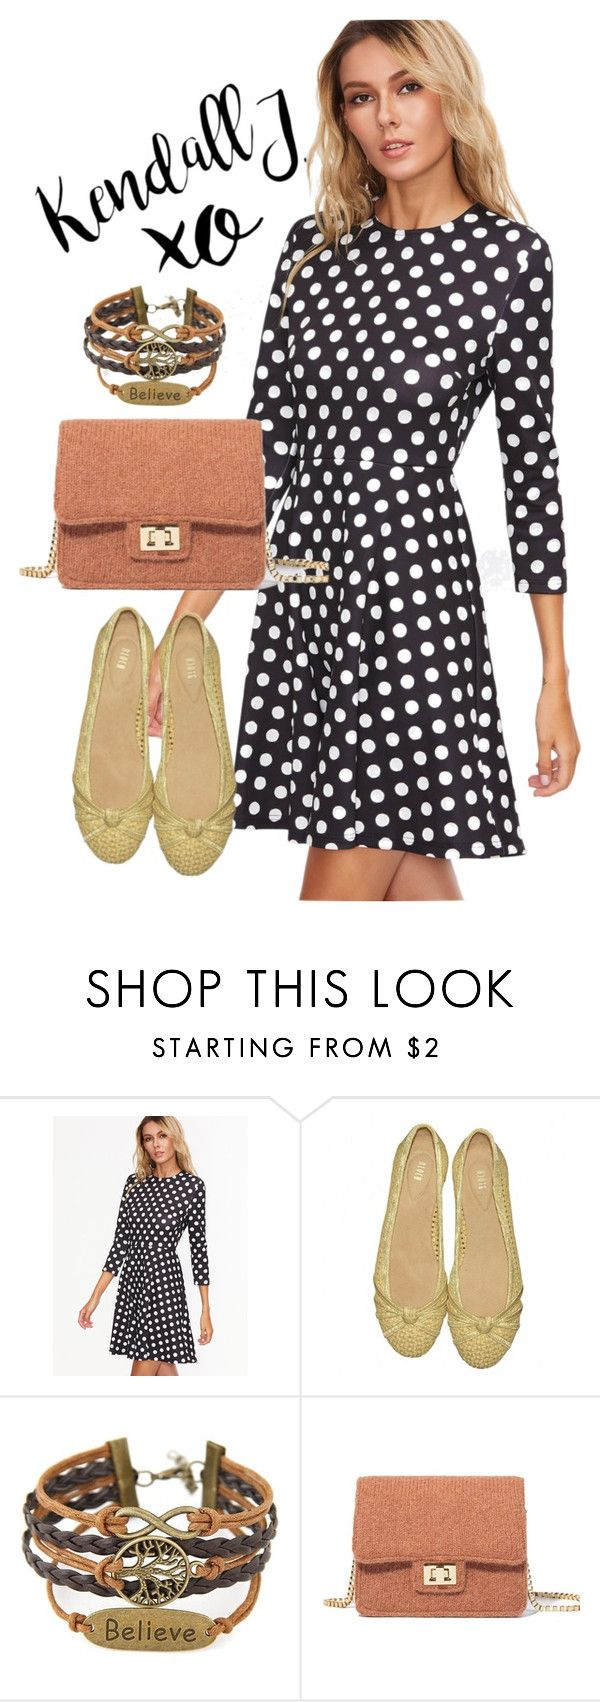 """dress"" by masayuki4499 ❤ liked on Polyvore featuring xO Design and Bloch"